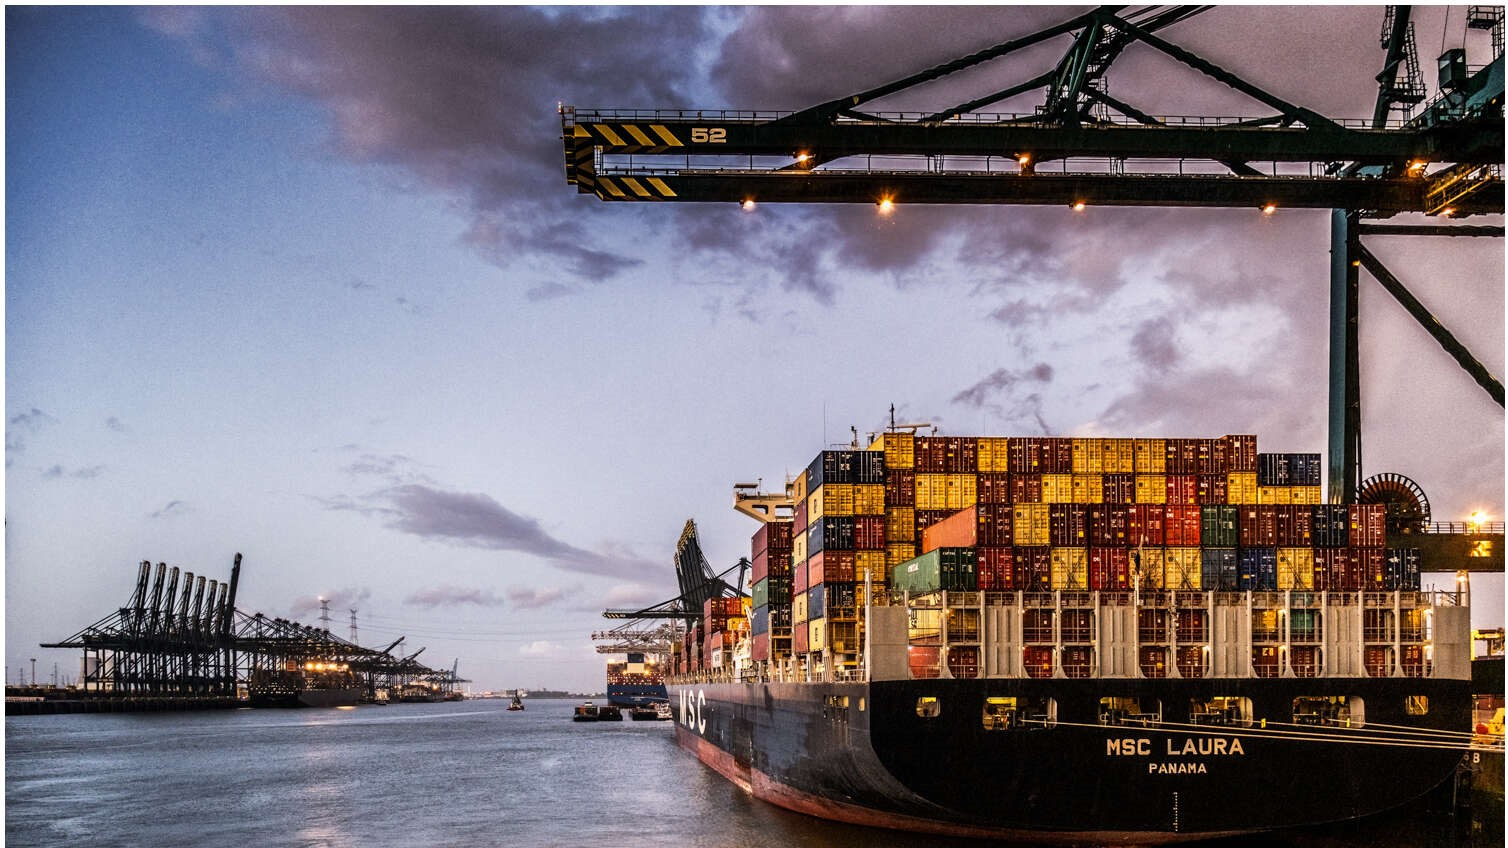 Port of Antwerp hold its own amongst corona crisis 1